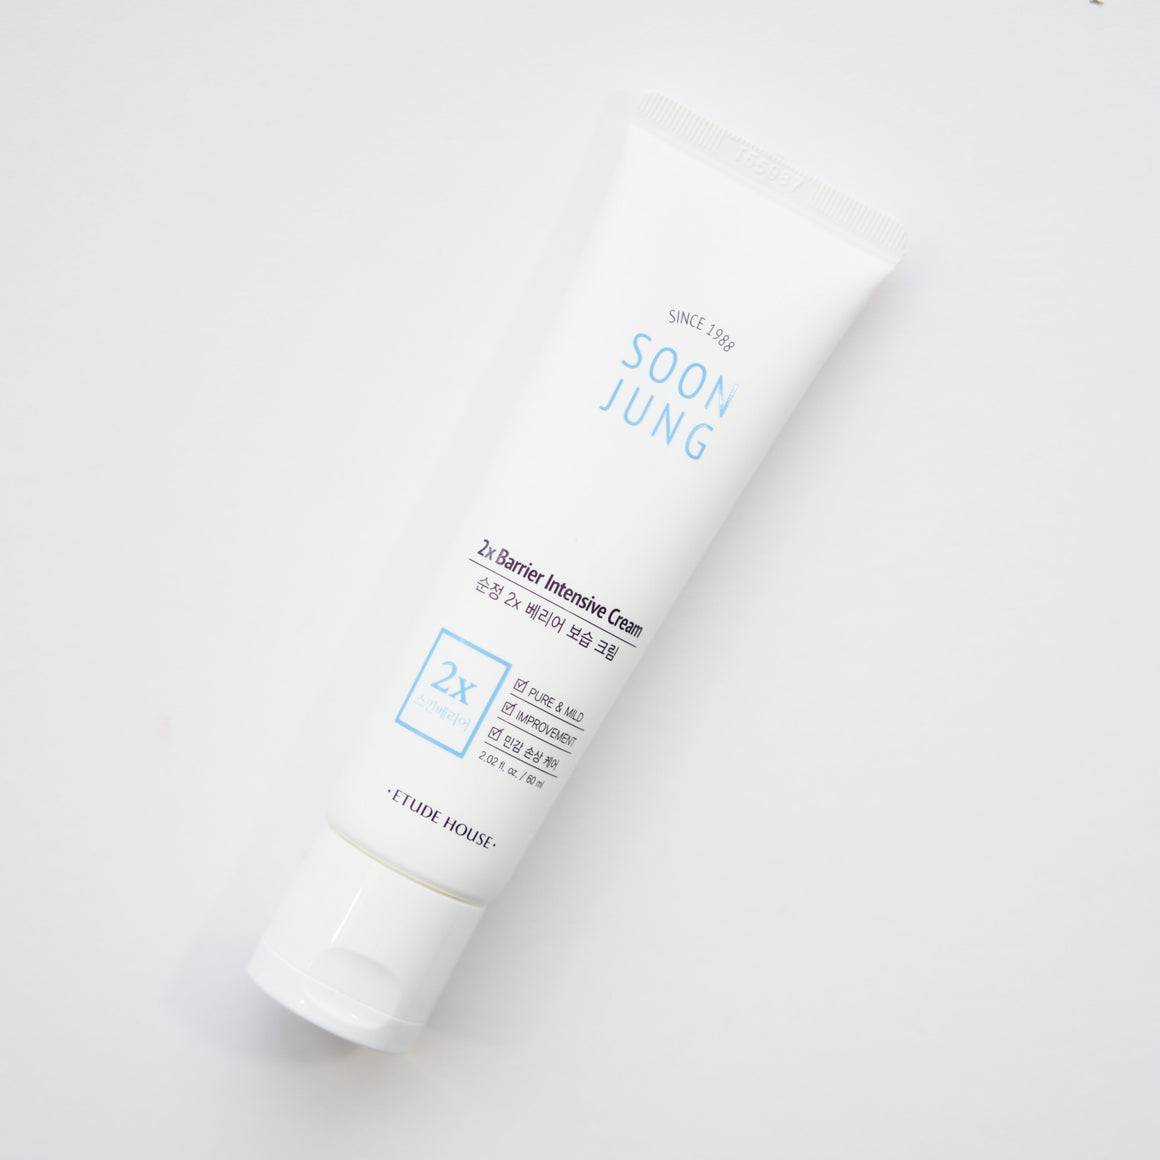 ETUDE HOUSE SoonJung 2x Barrier Intensive Cream (60 ml) [EXP 09.13.2021]